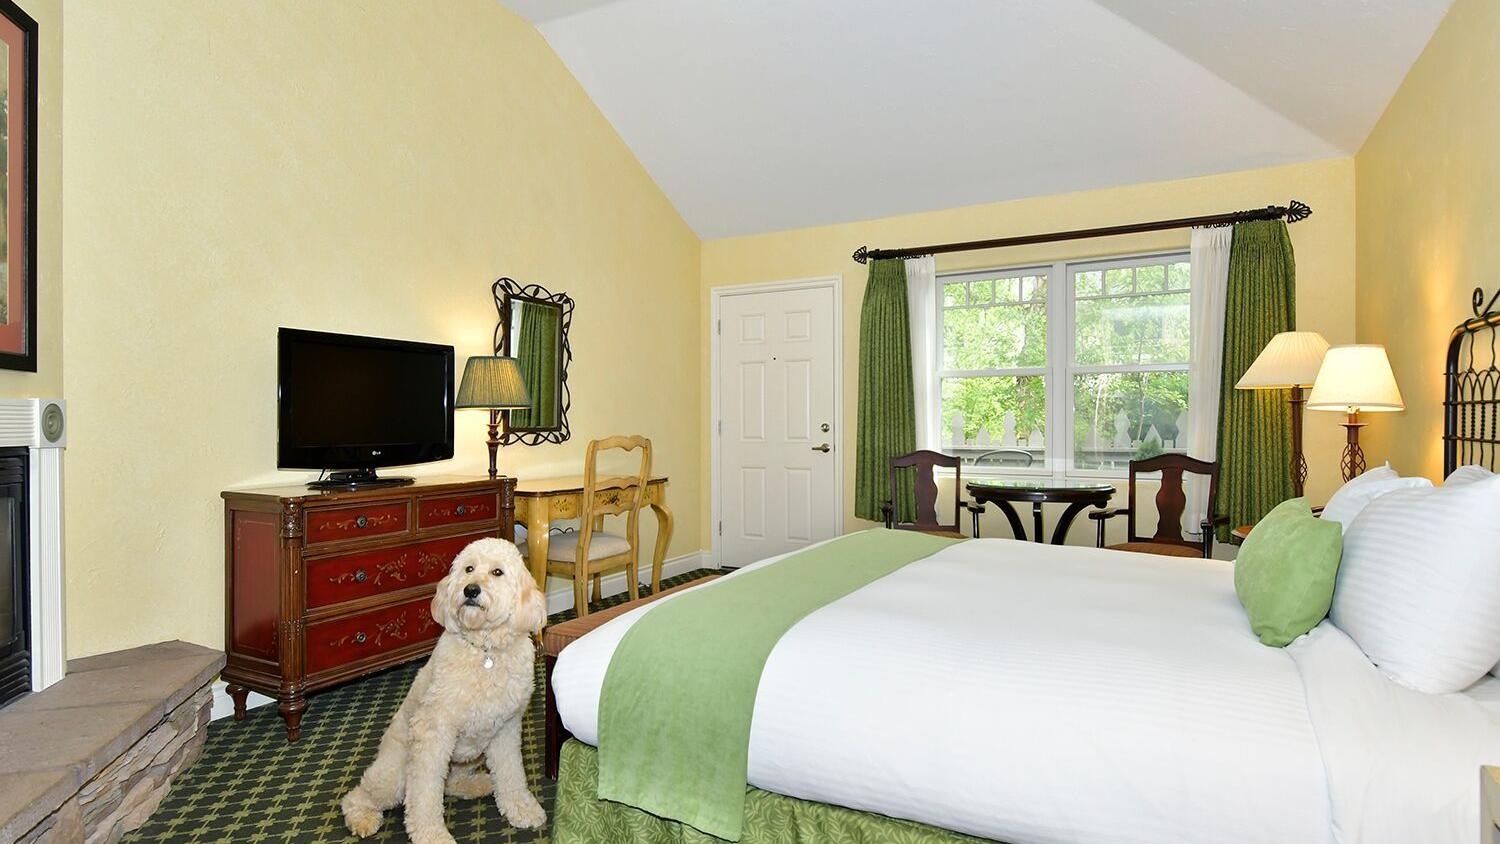 A dog sits in a pet-friendly hotel room